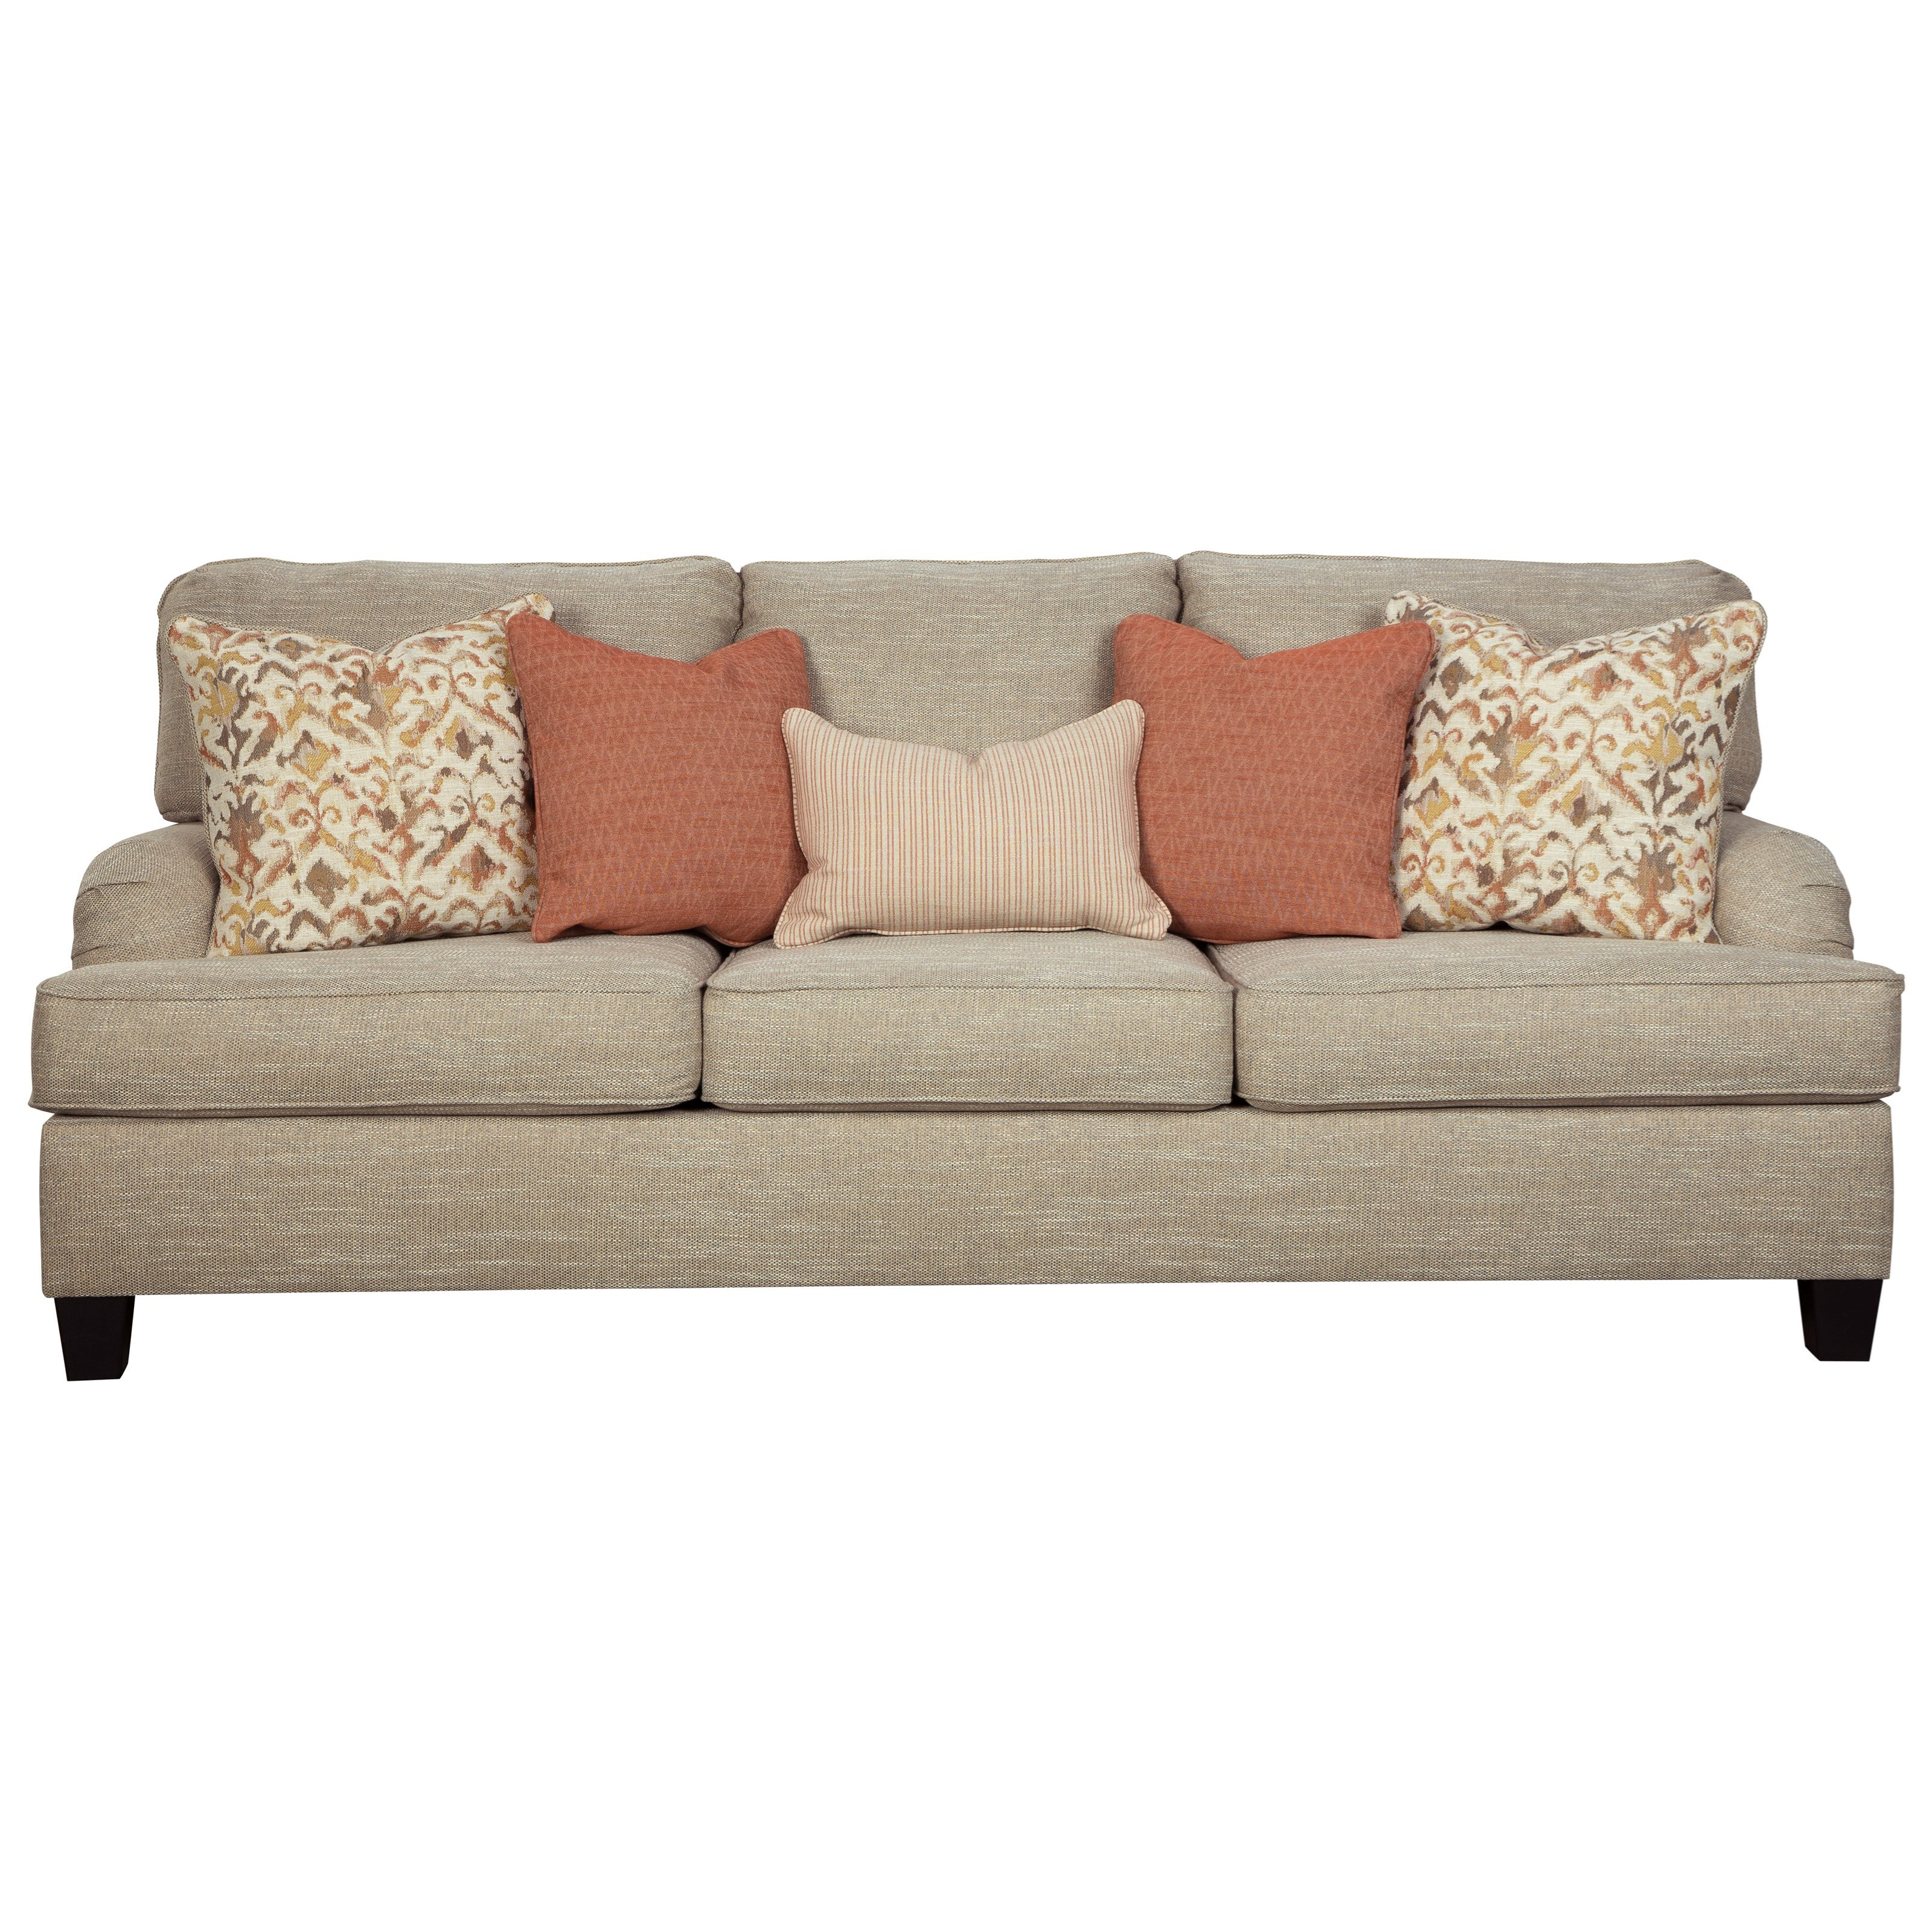 Almanza Sofa by Signature Design by Ashley at Simply Home by Lindy's